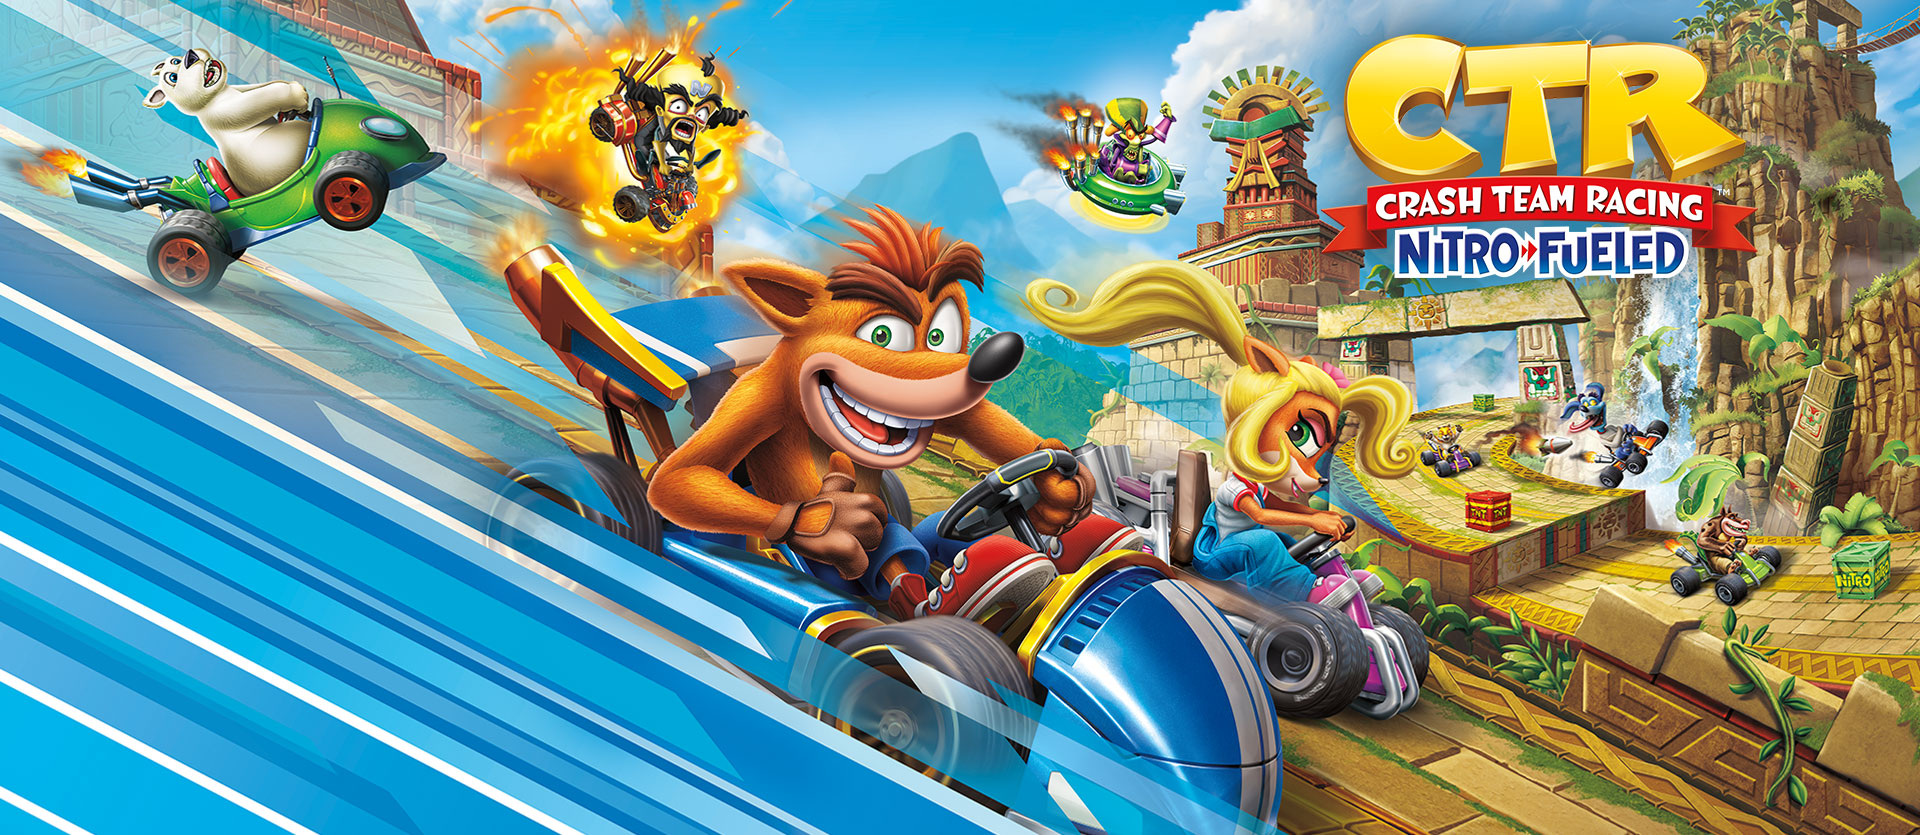 CTR Crash Team Racing Nitro Fuelled, Crash Bandicoot and other characters in vehicles on jungle track